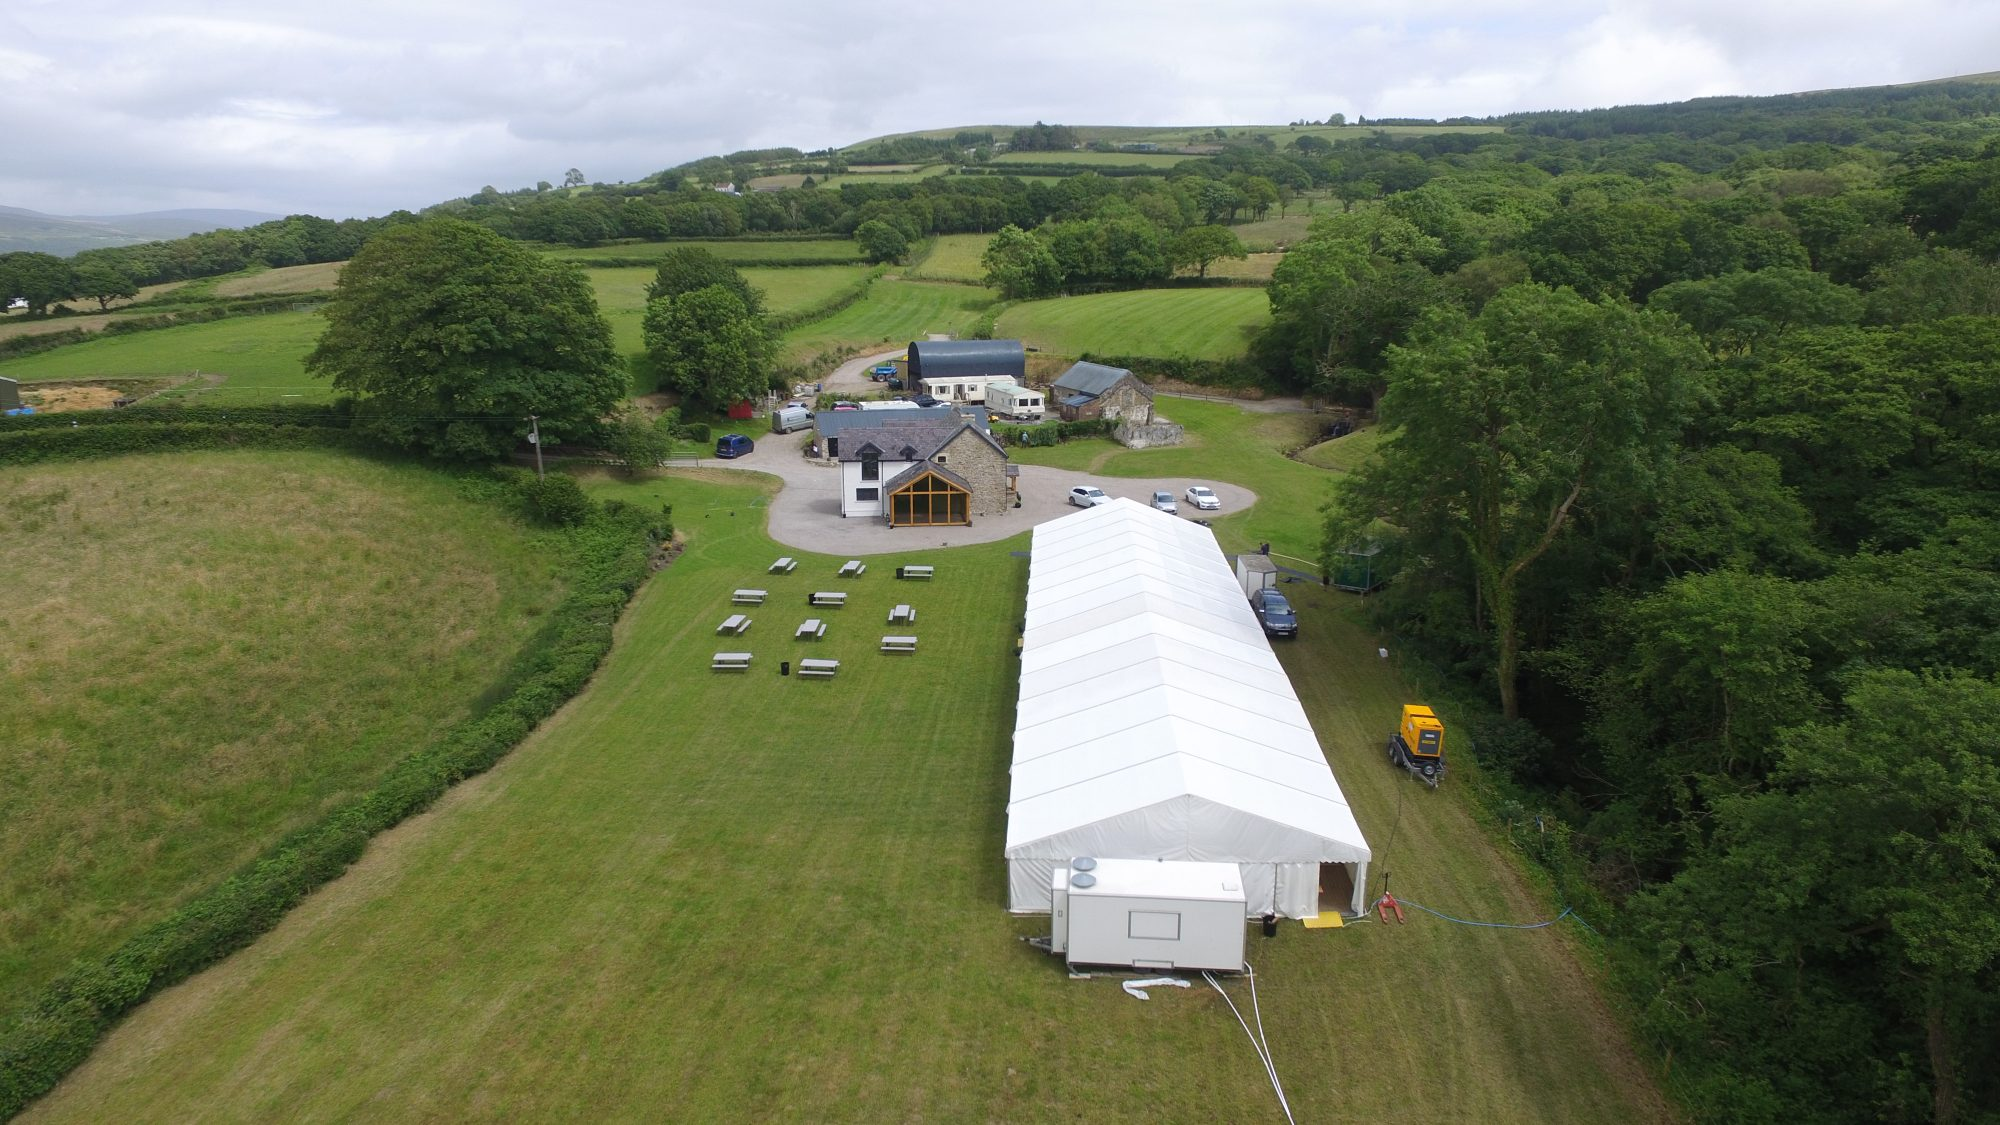 Aerial view of wedding marquee